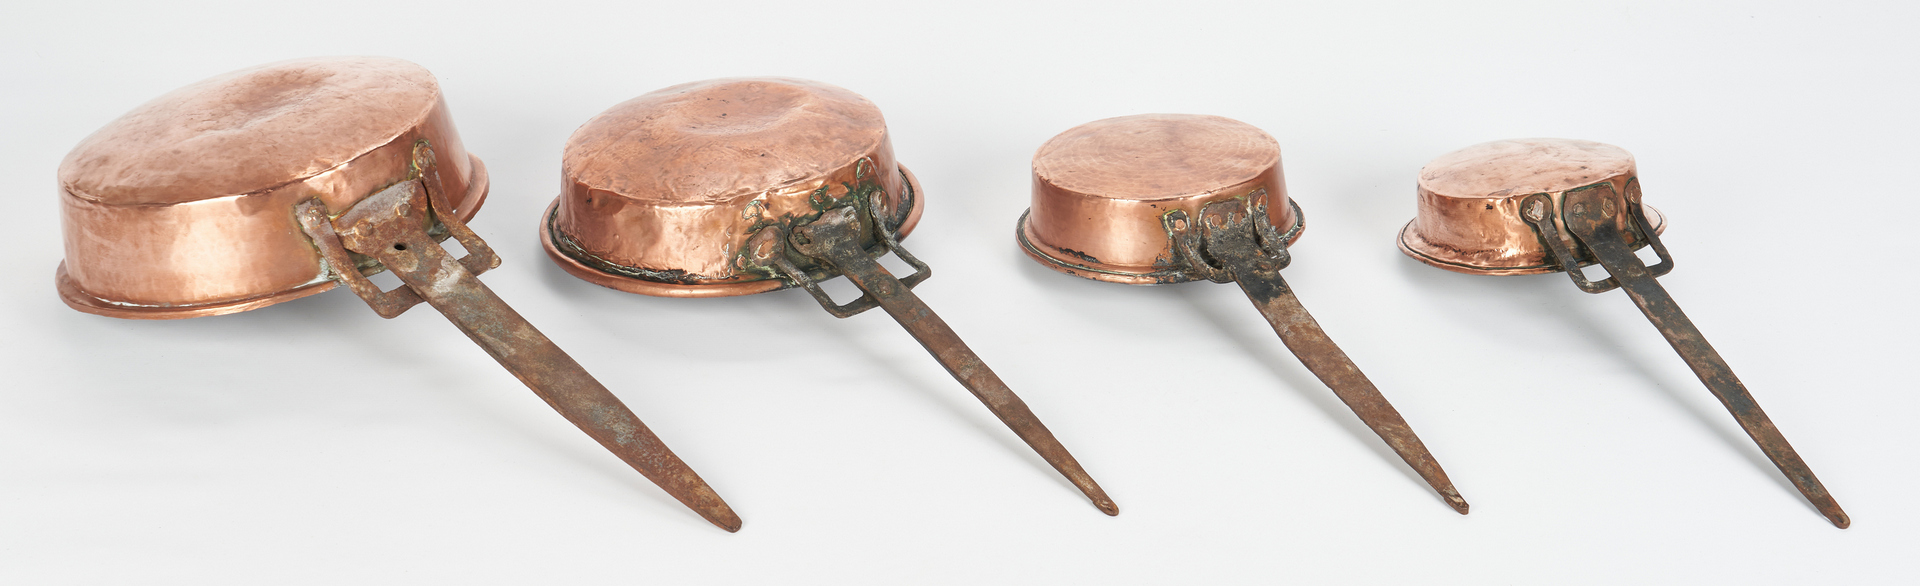 Lot 1049: 10 pcs. Early Copper Cookware inc. Signed